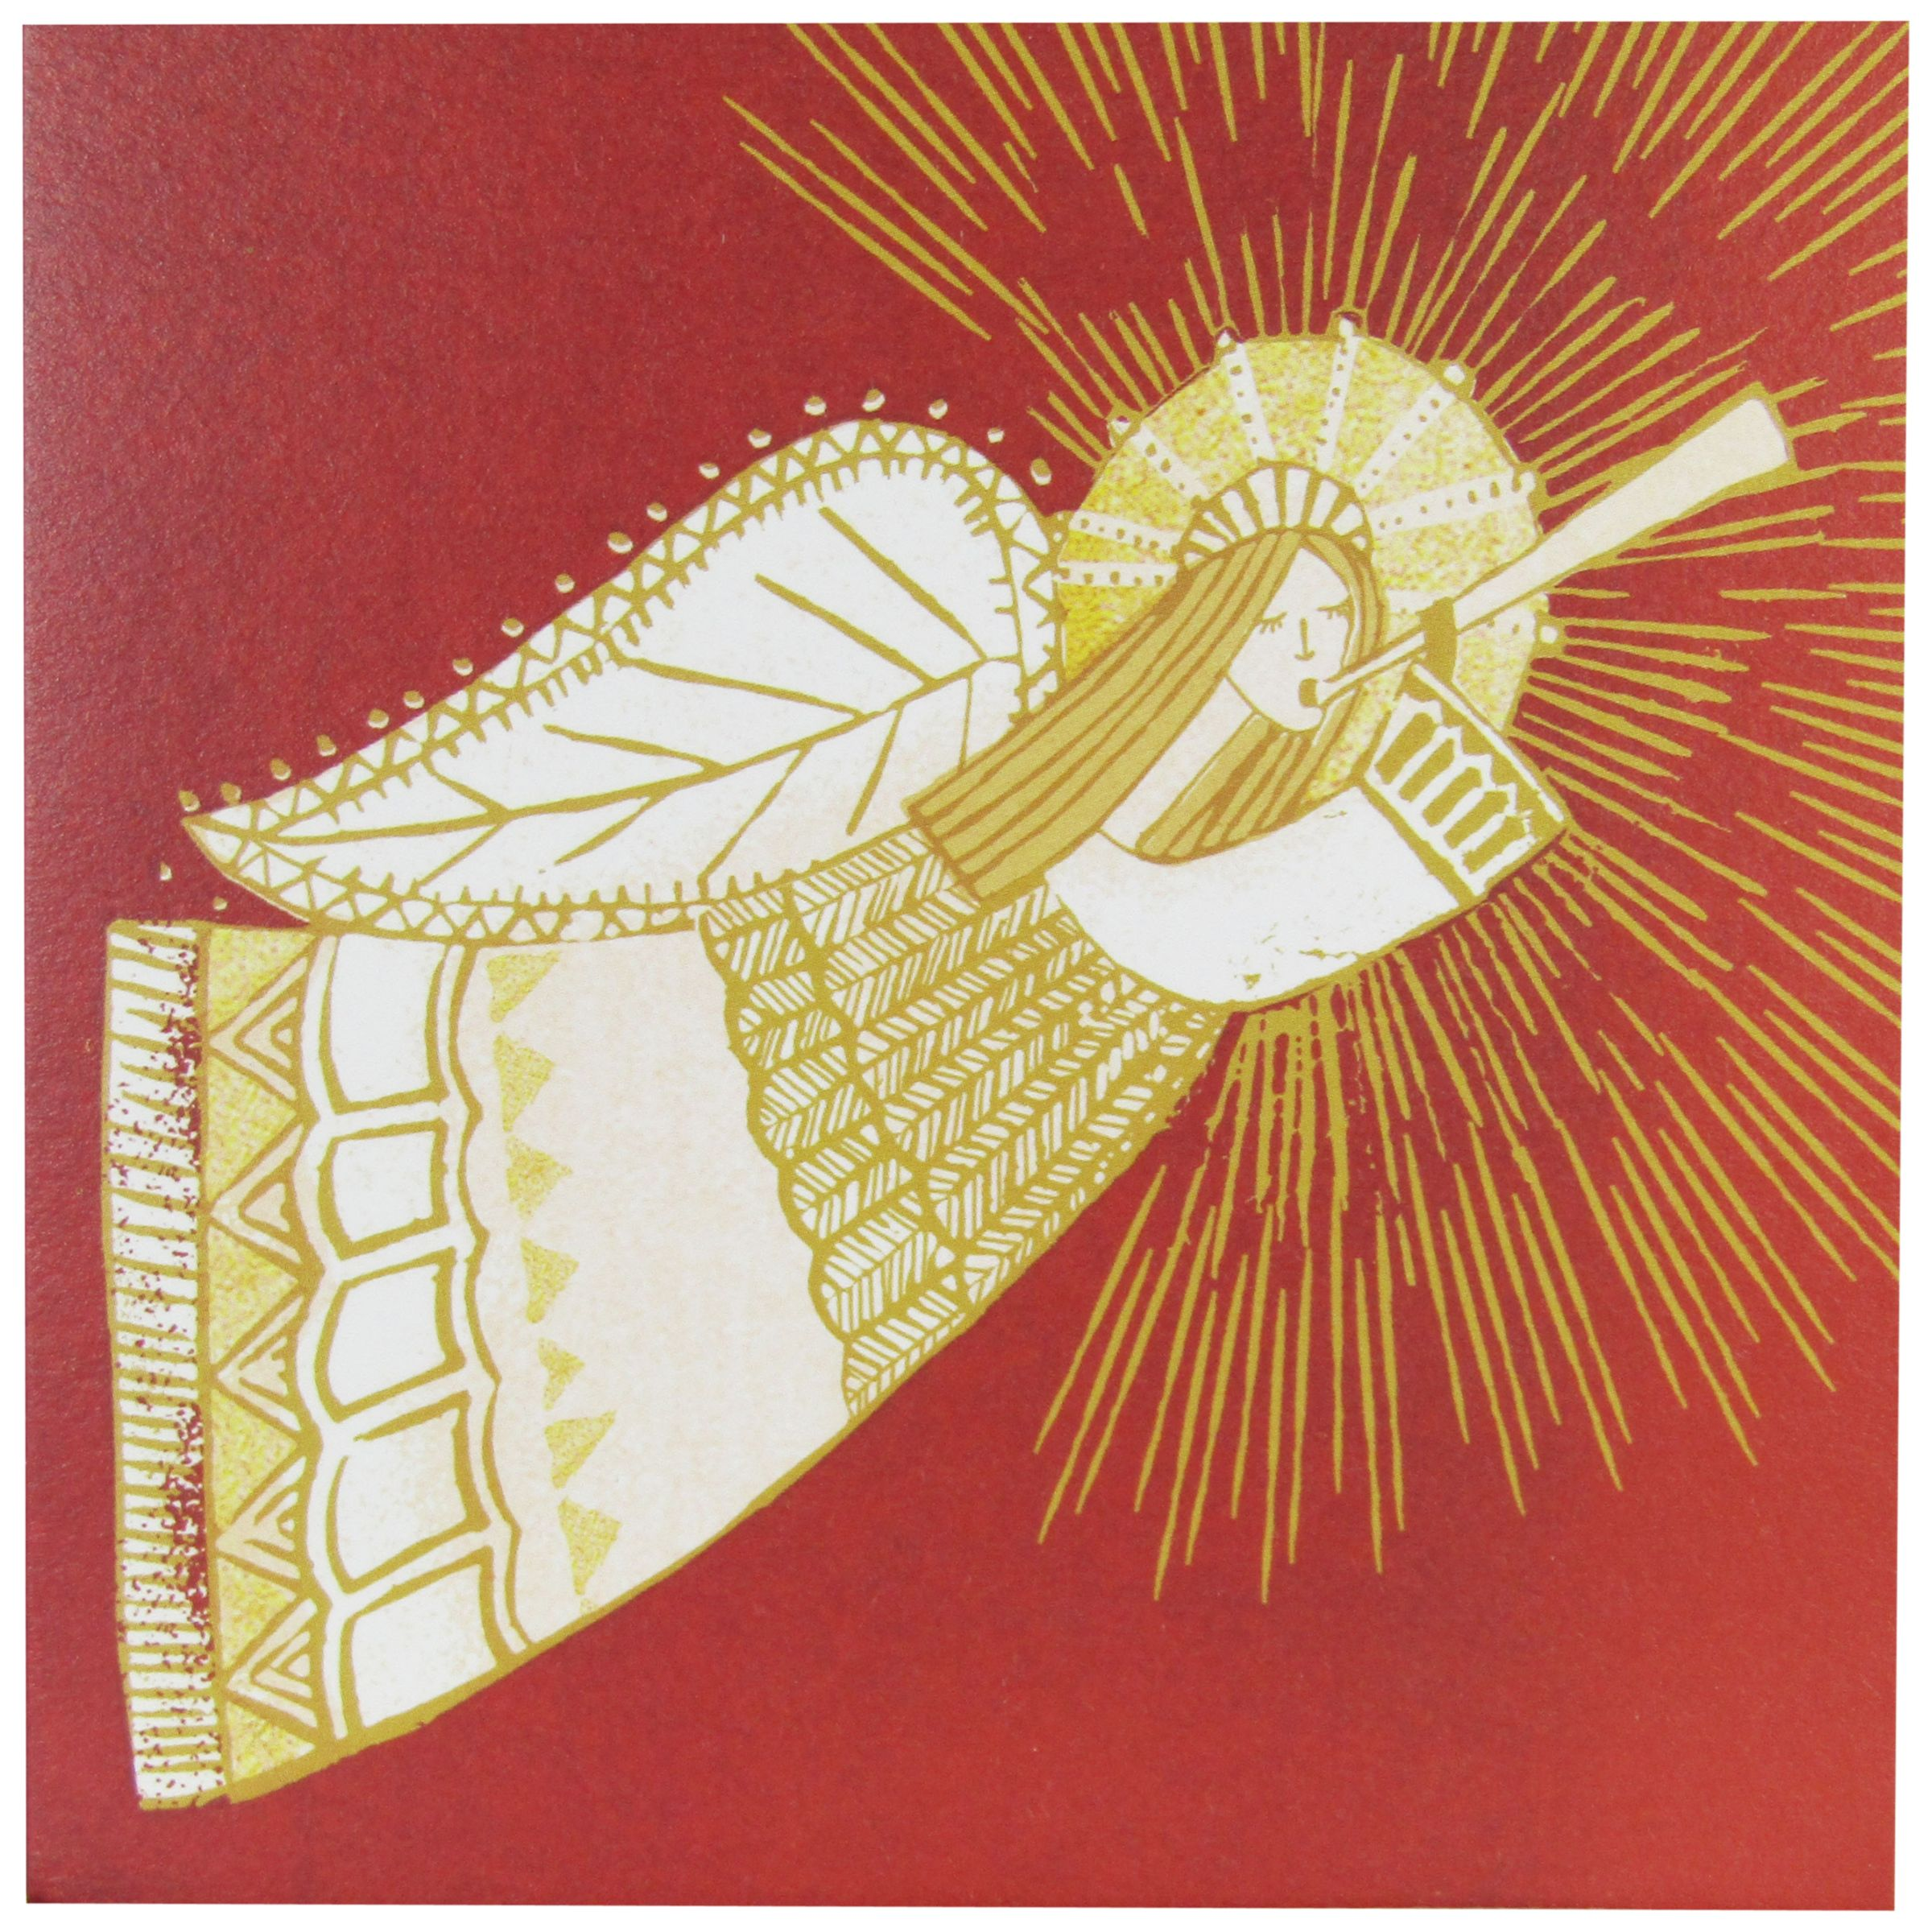 Woodmansterne Woodmansterne Bright Beauty Charity Christmas Cards, Pack of 5